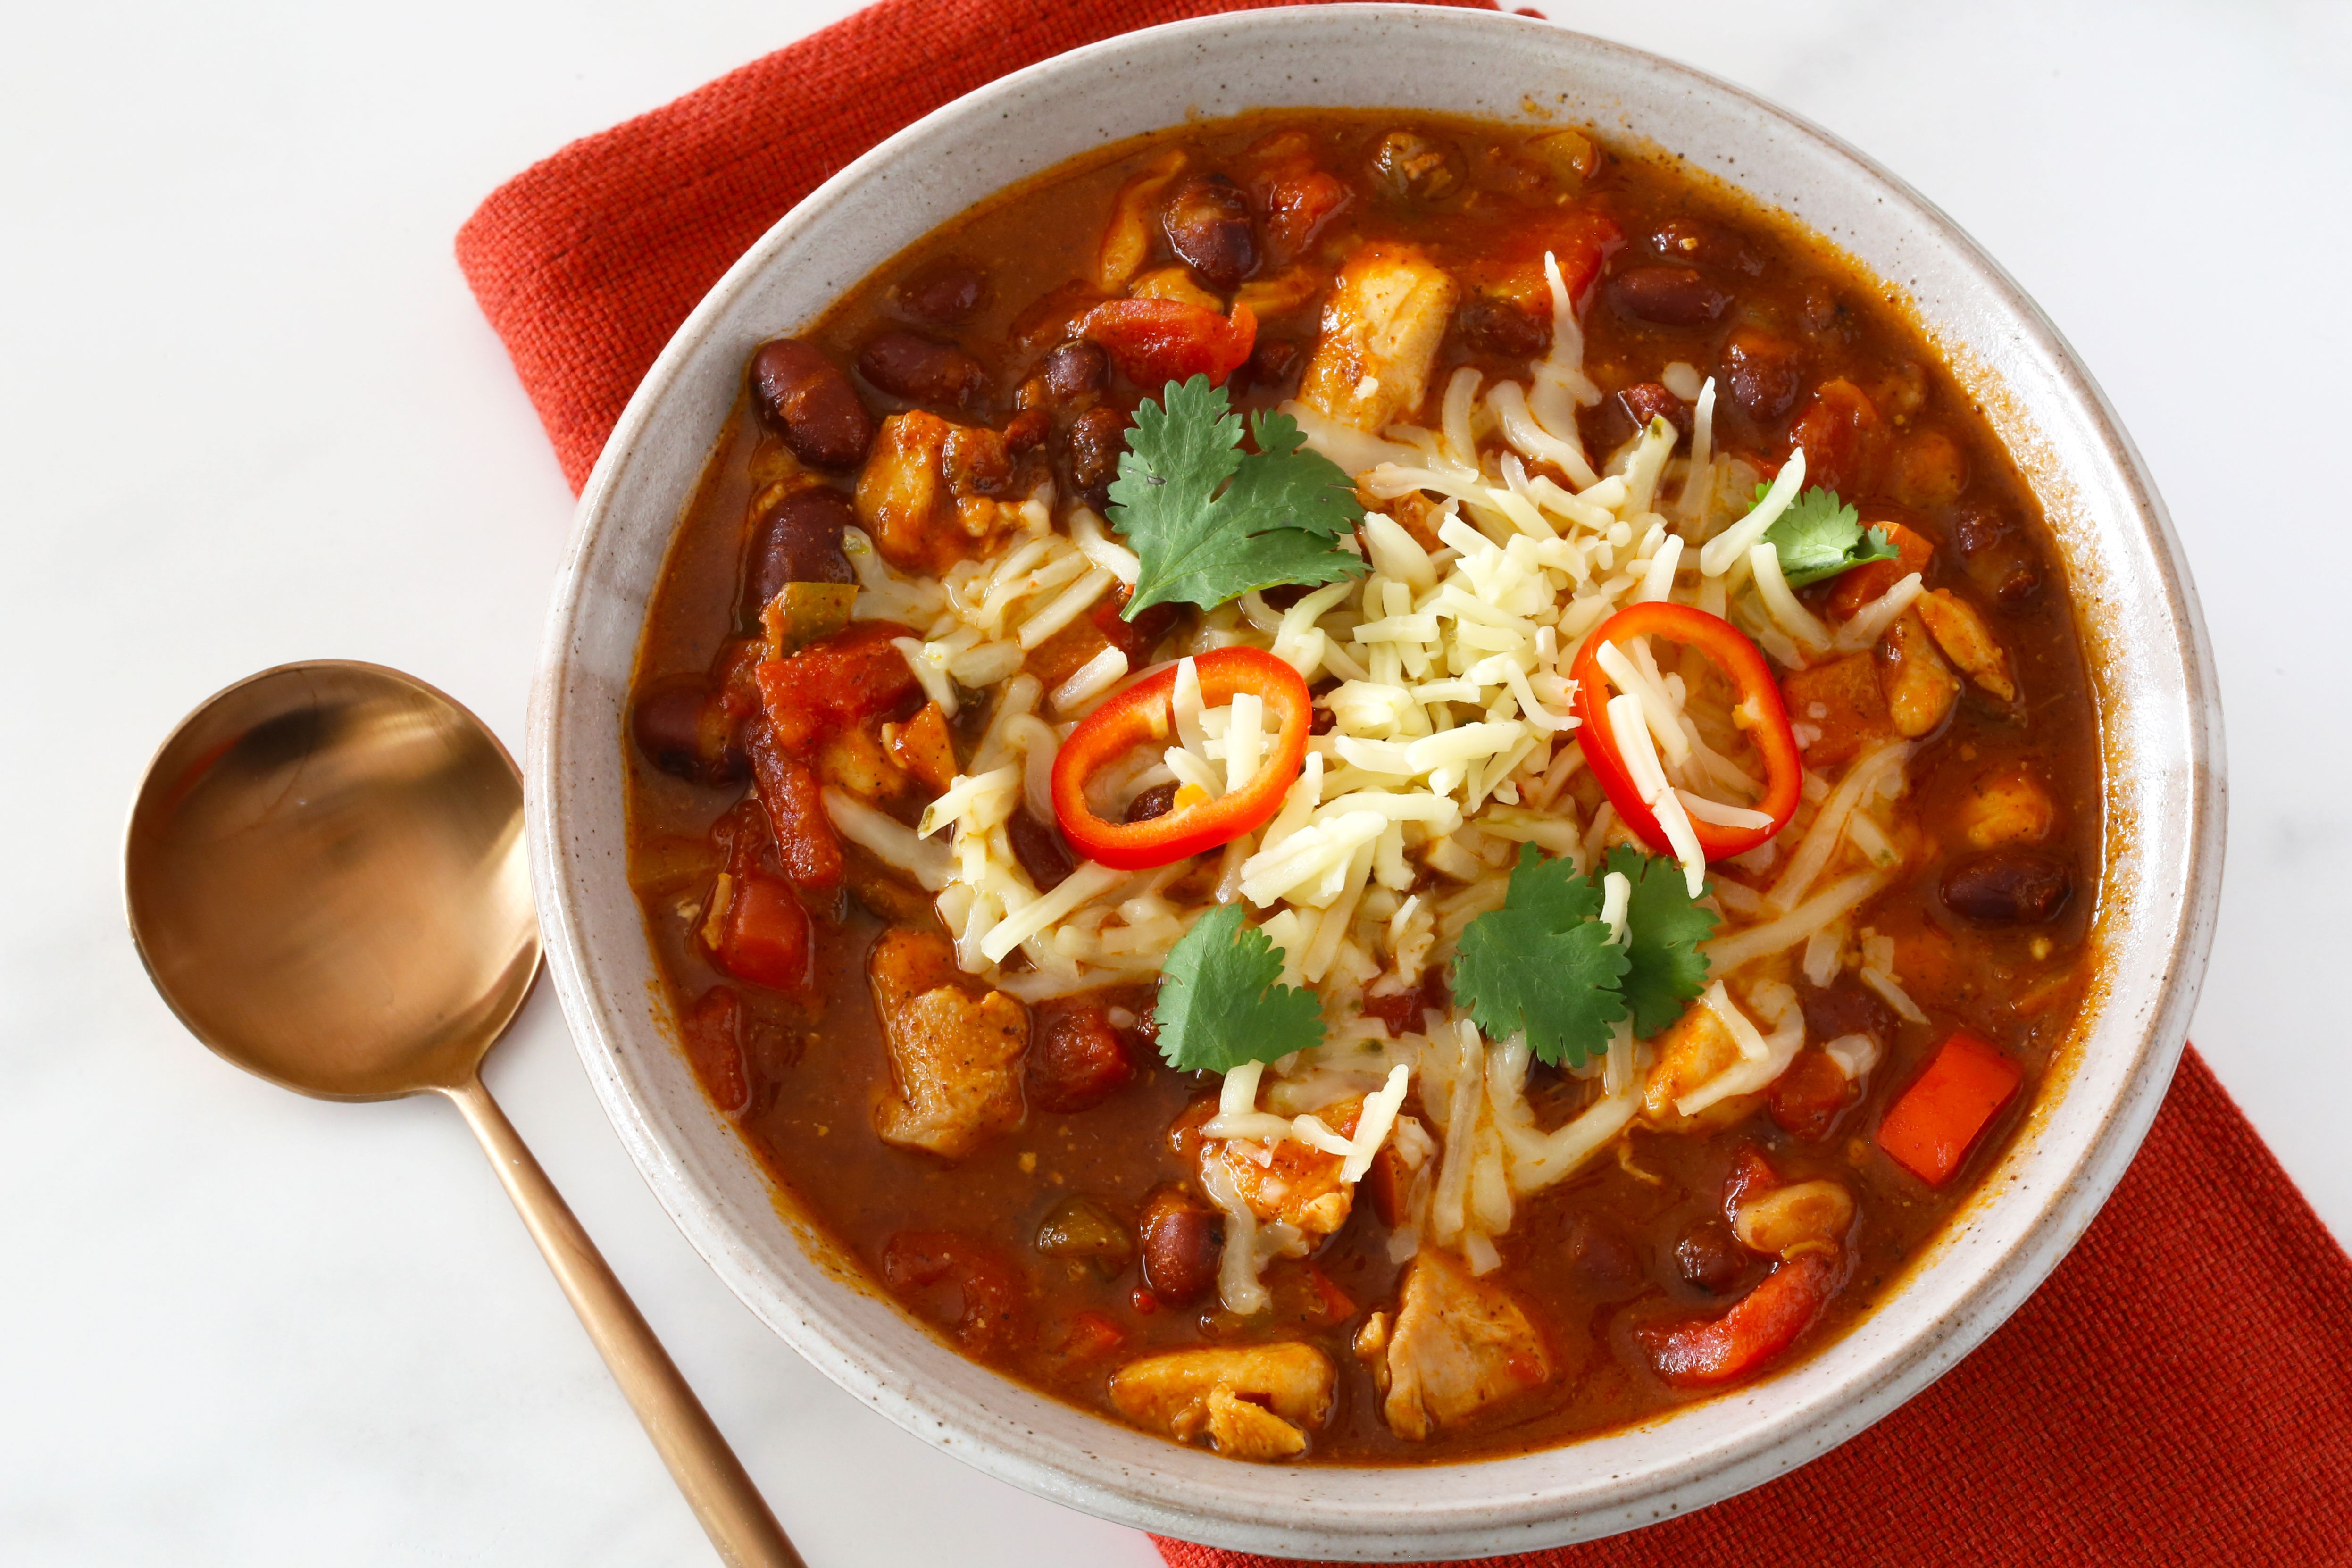 Chicken and red bean chili in a bowl.